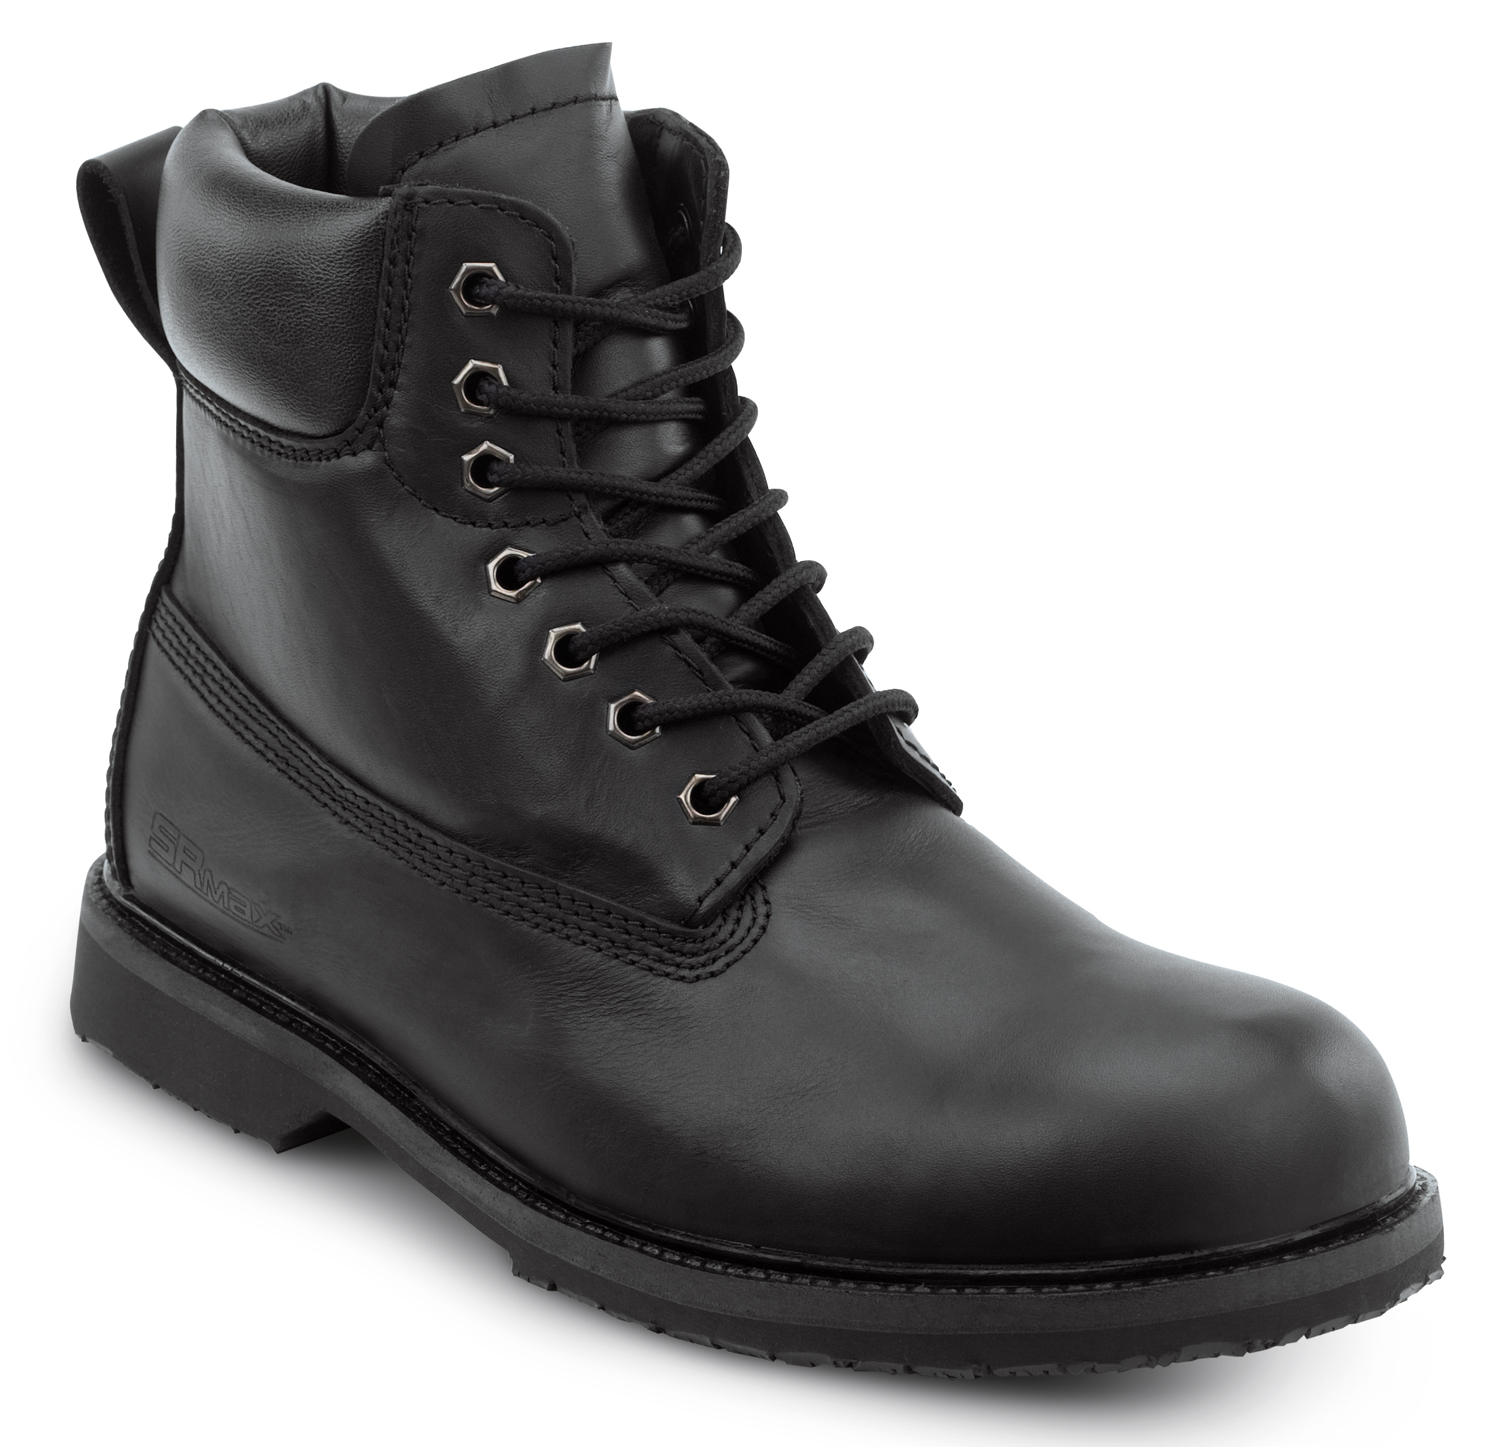 Mens Black Work Boots